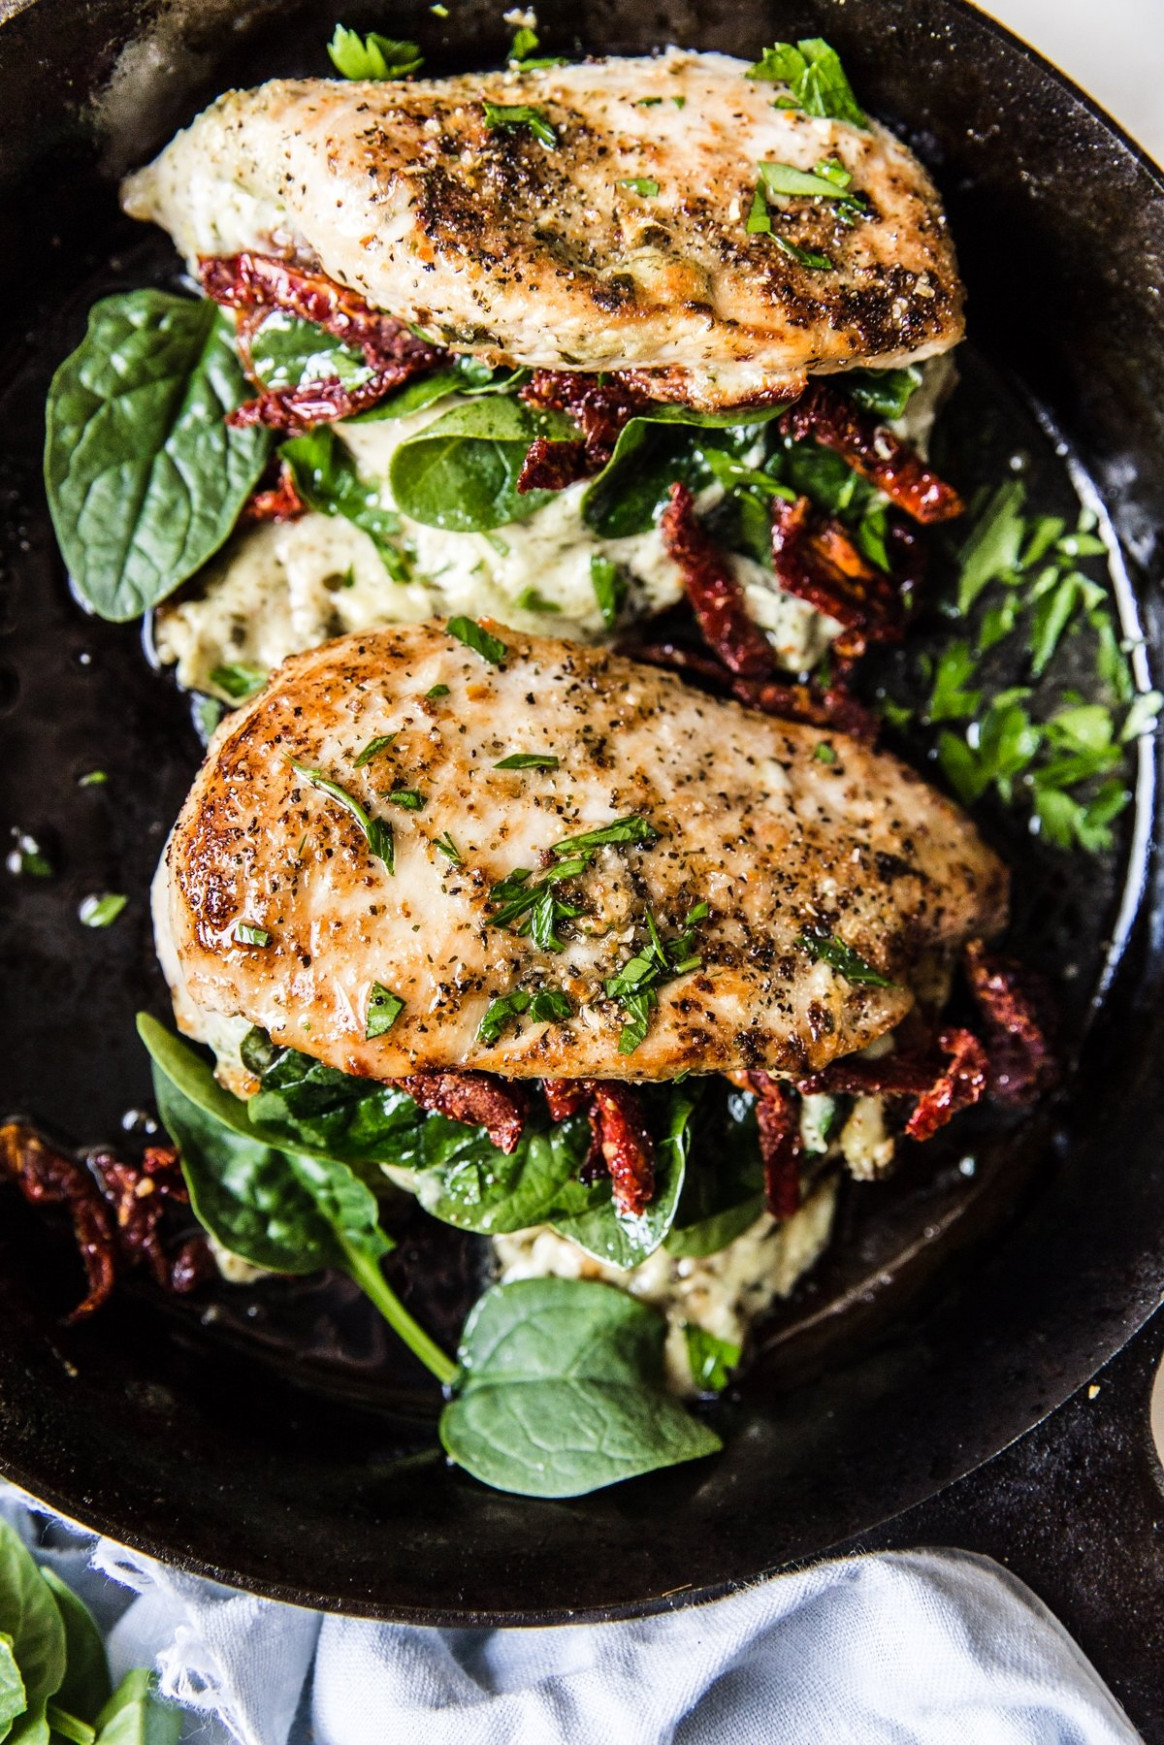 Stuffed Chicken Breast with Spinach, Cheese and Sun-Dried Tomatoes - chicken recipes with cream cheese